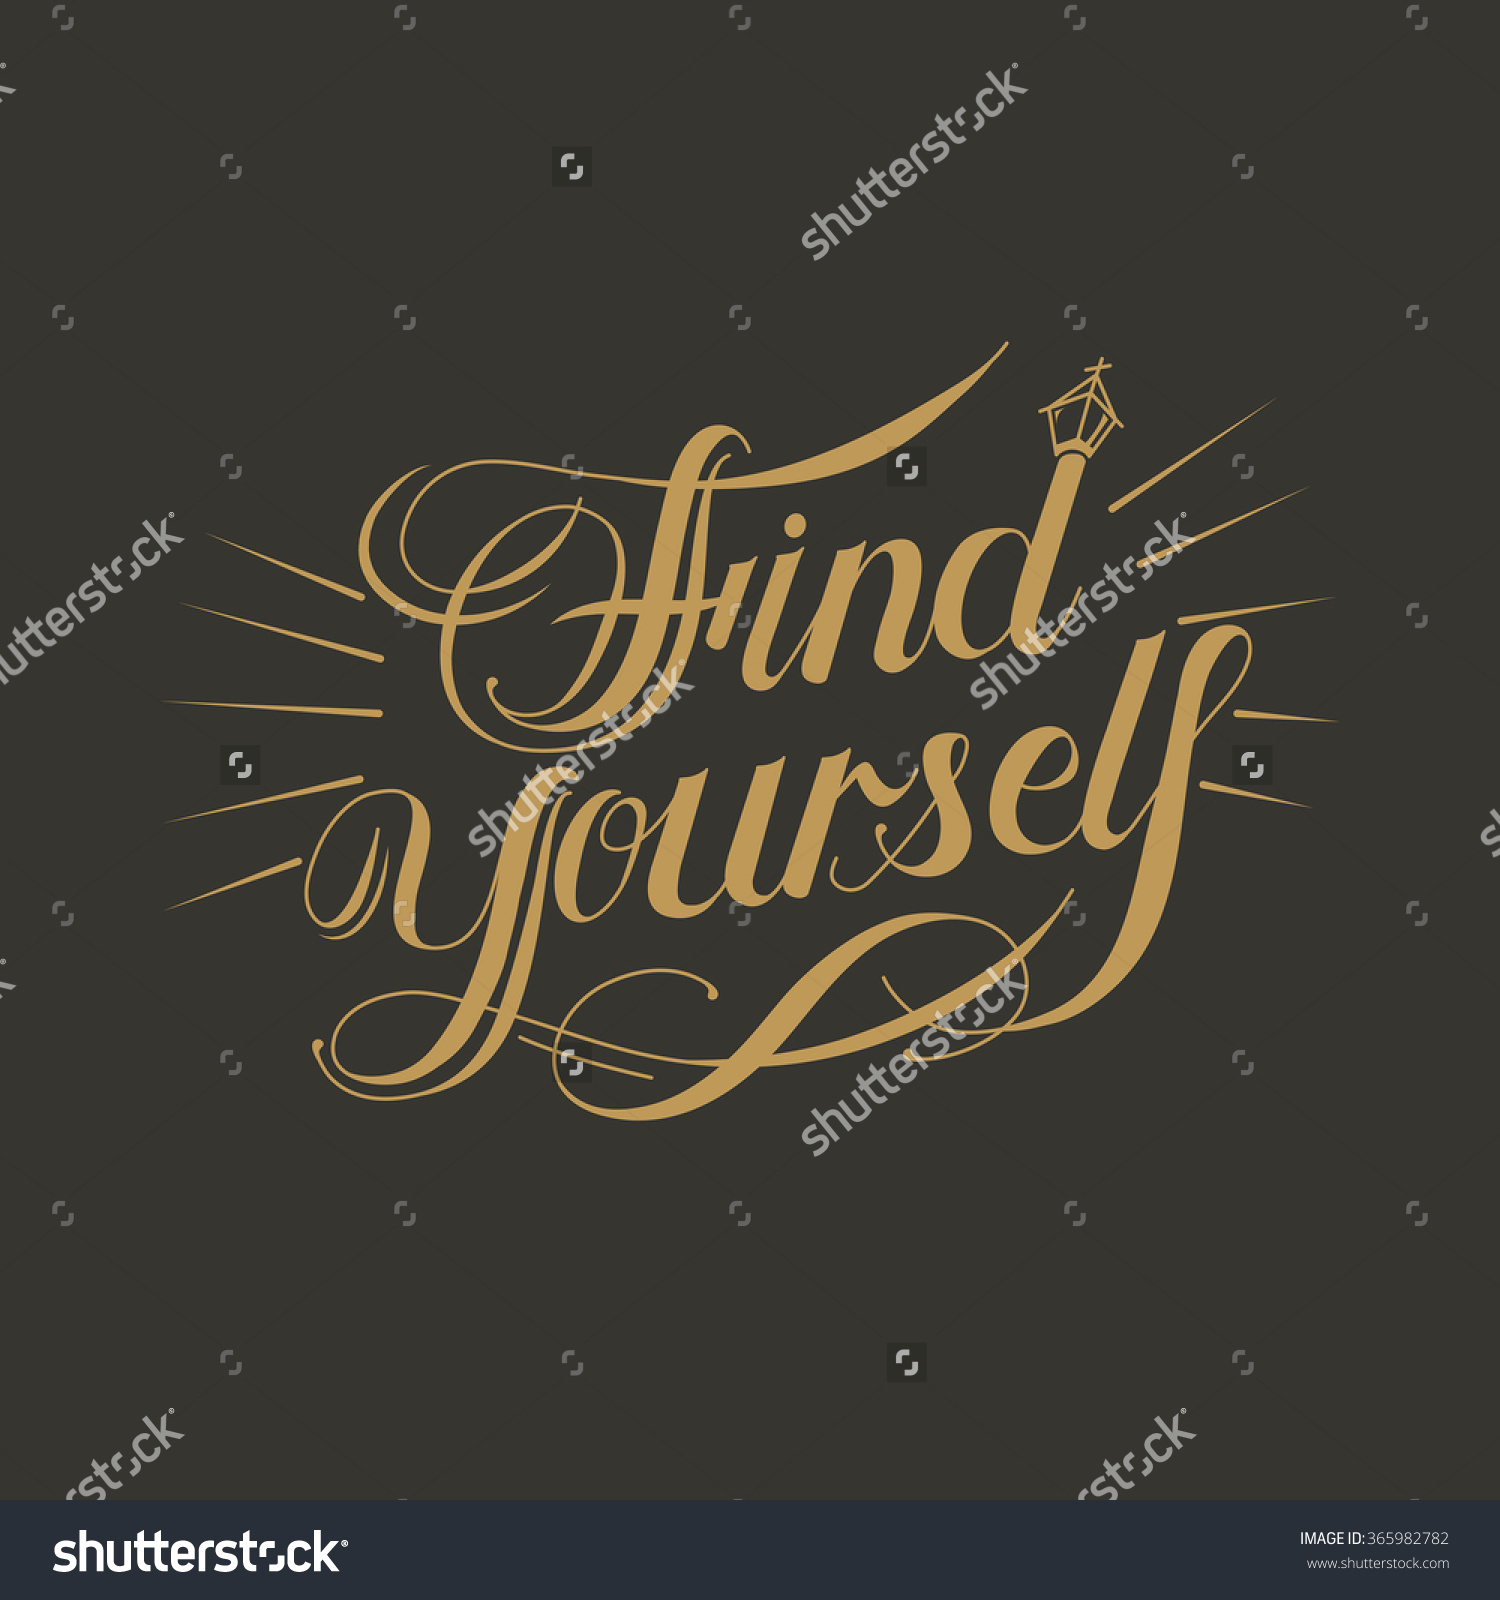 Retro Find Yourself Calligraphy Design Over Brown